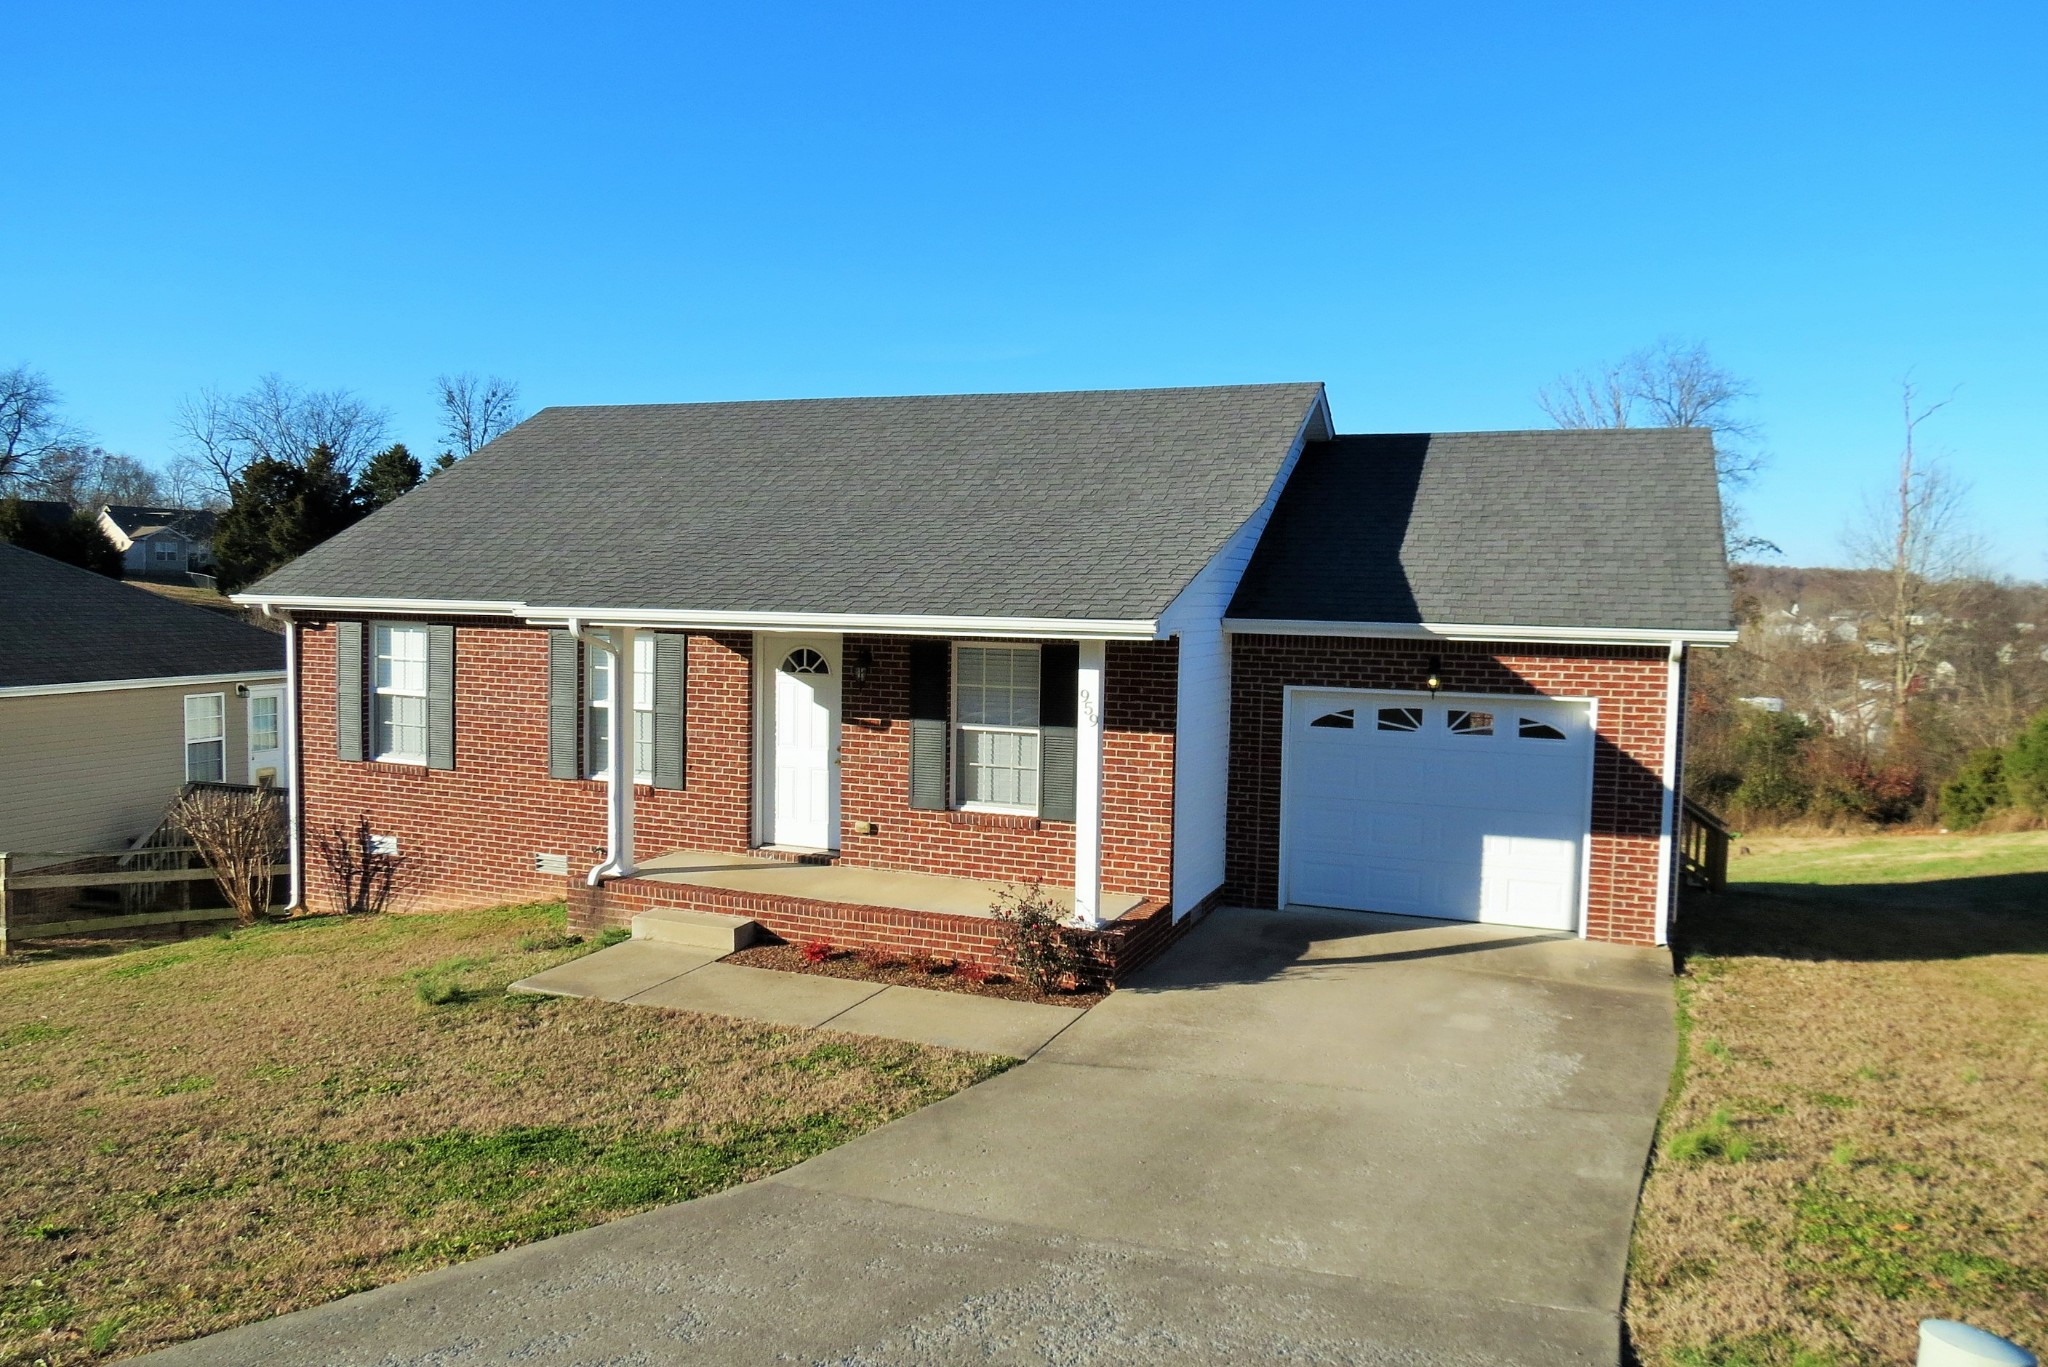 959 Russet Dr Property Photo - Clarksville, TN real estate listing